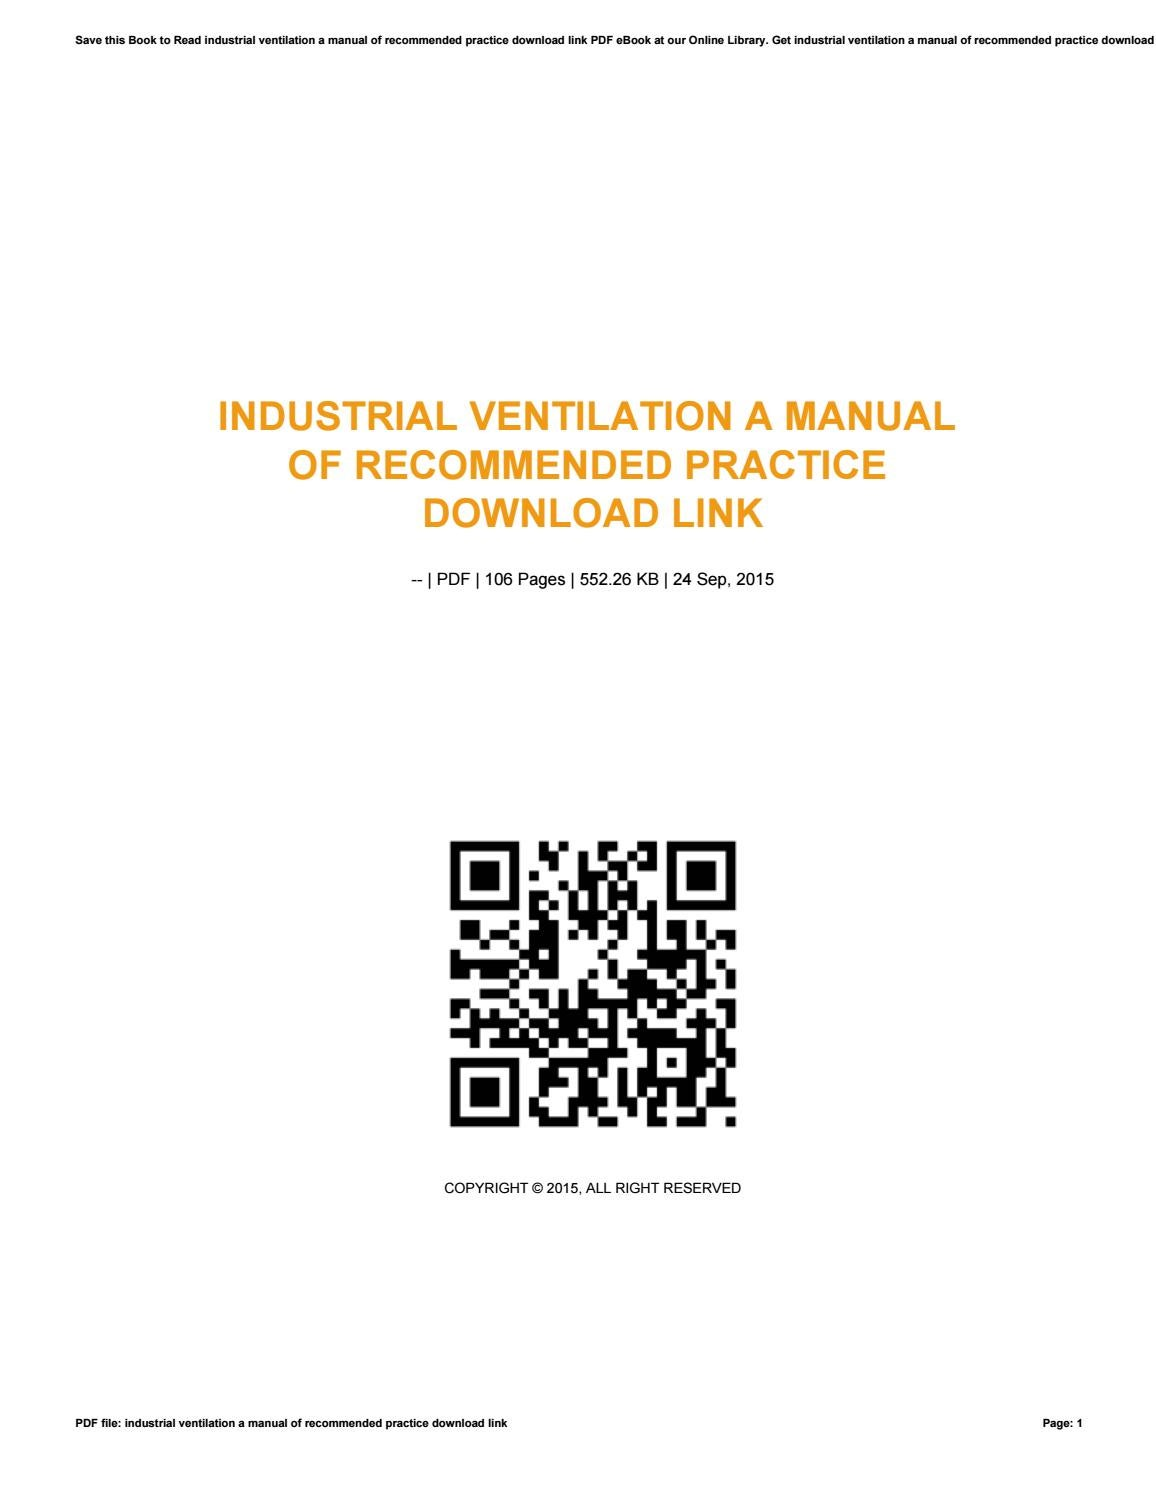 Industrial ventilation a manual of recommended practice download link by  vssms147 - issuu